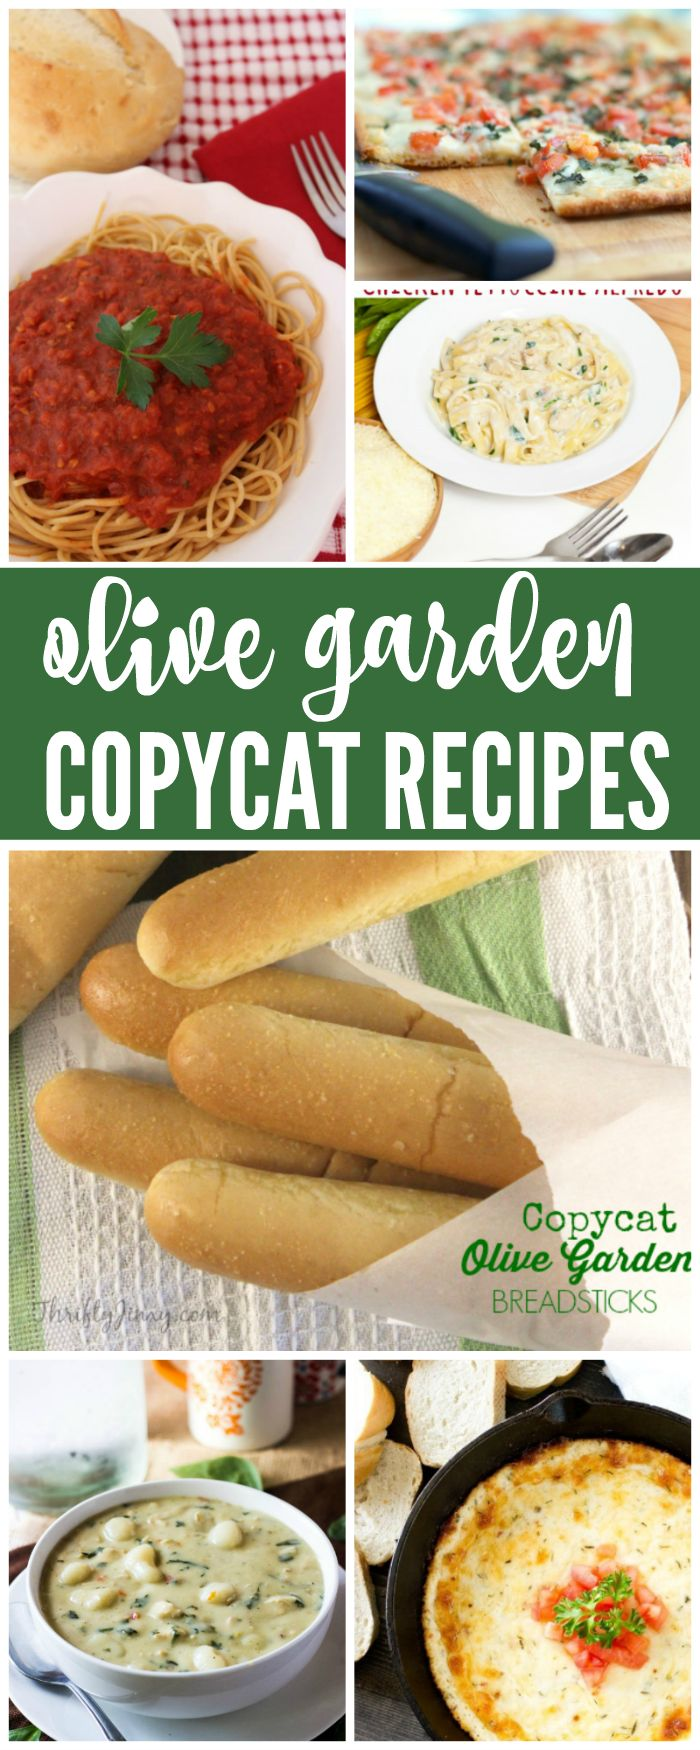 I have some delicious Olive Garden Copycat Recipes for you today! If you love Olive Garden and want to give some of their recipes a try at home, then check out these great recipes